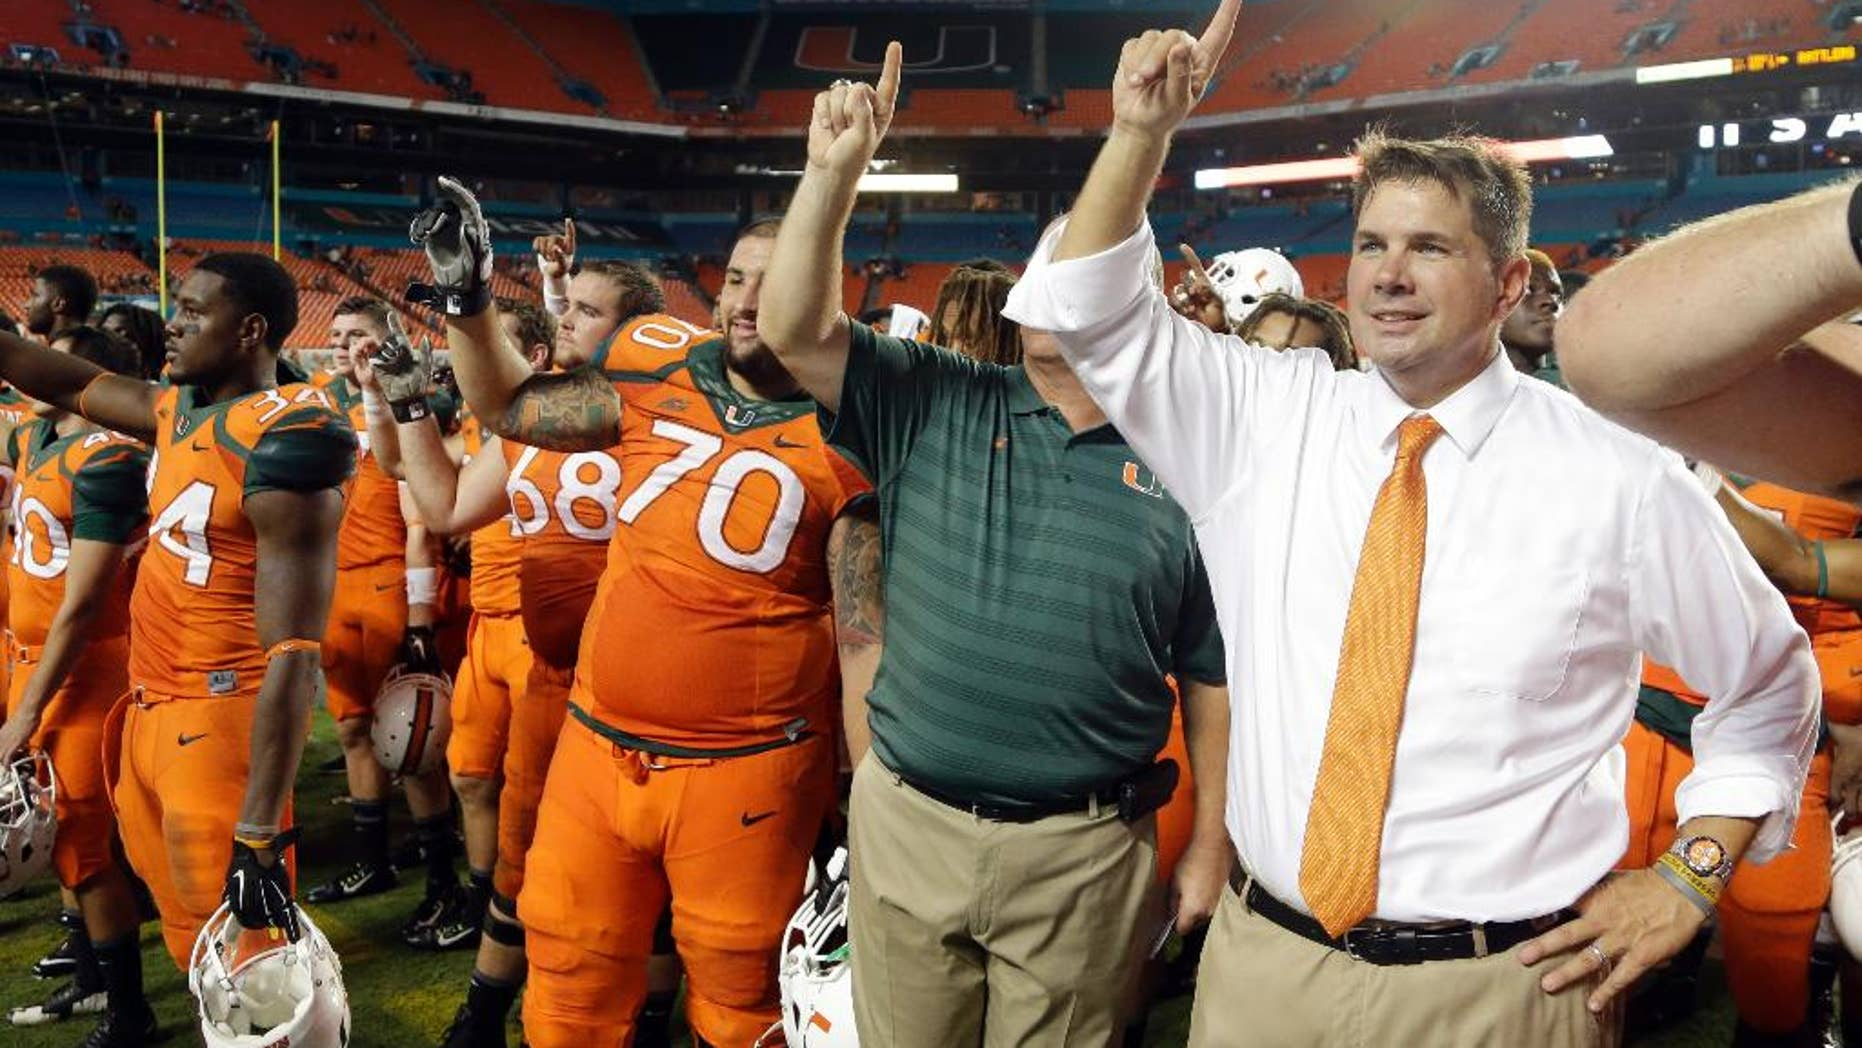 Miami head coach Al Golden, right, sings the alma mater with the team after Miami defeated Florida A&M 41-7 in an NCAA football game, Saturday, Sept. 6, 2014, in Miami Gardens, Fla. (AP Photo/Lynne Sladky)